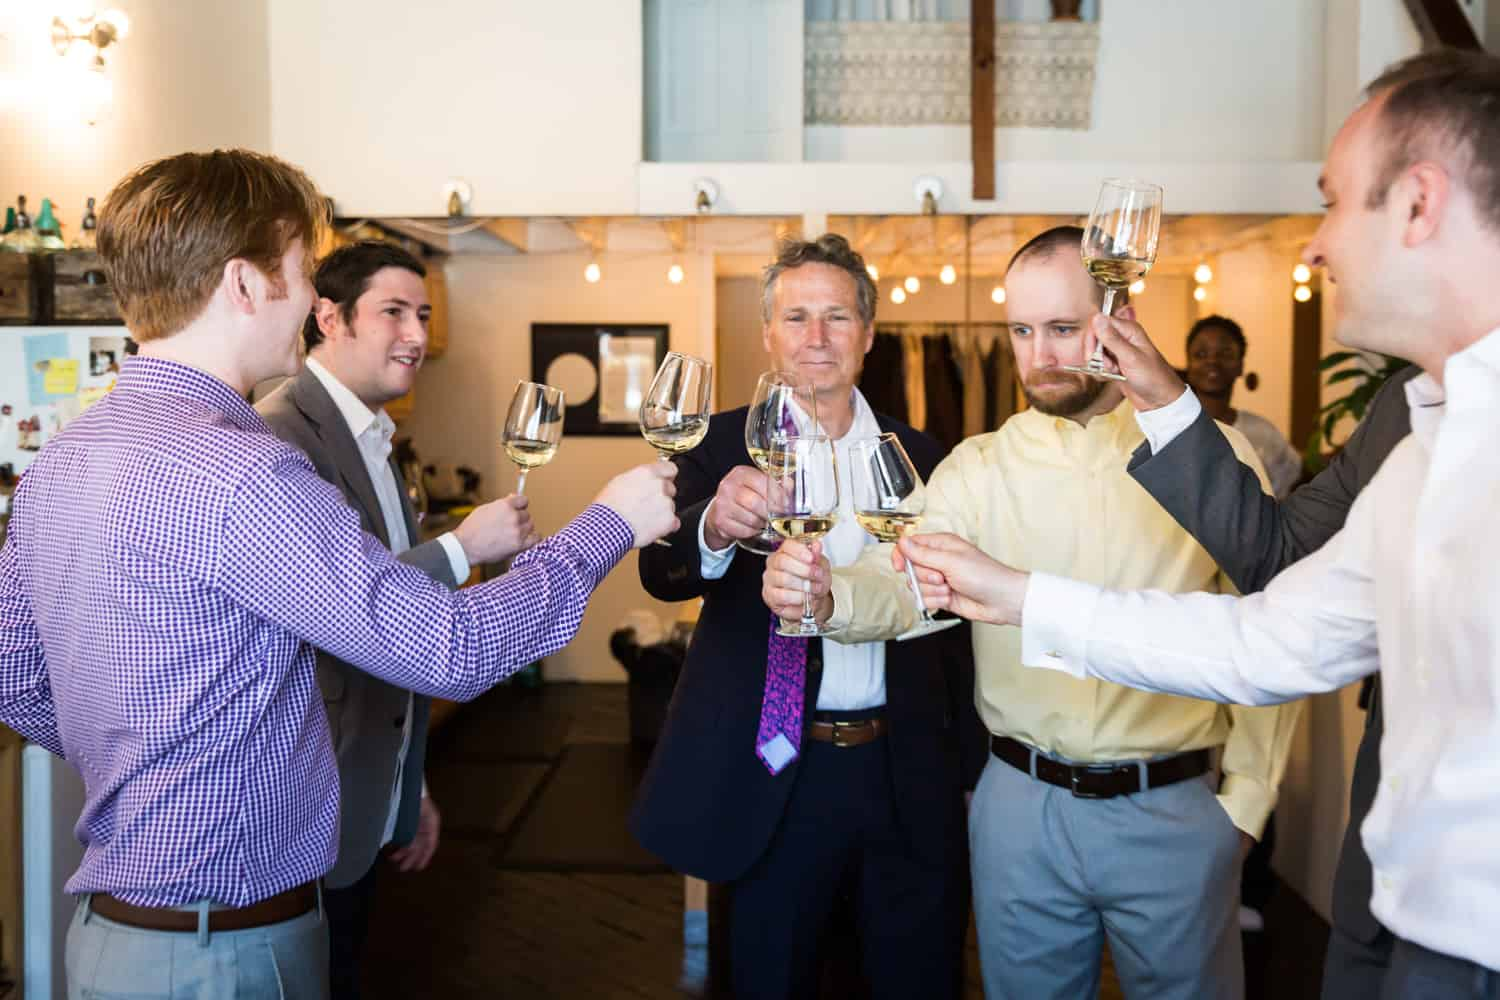 Groom and groomsmen toasting glasses before wedding